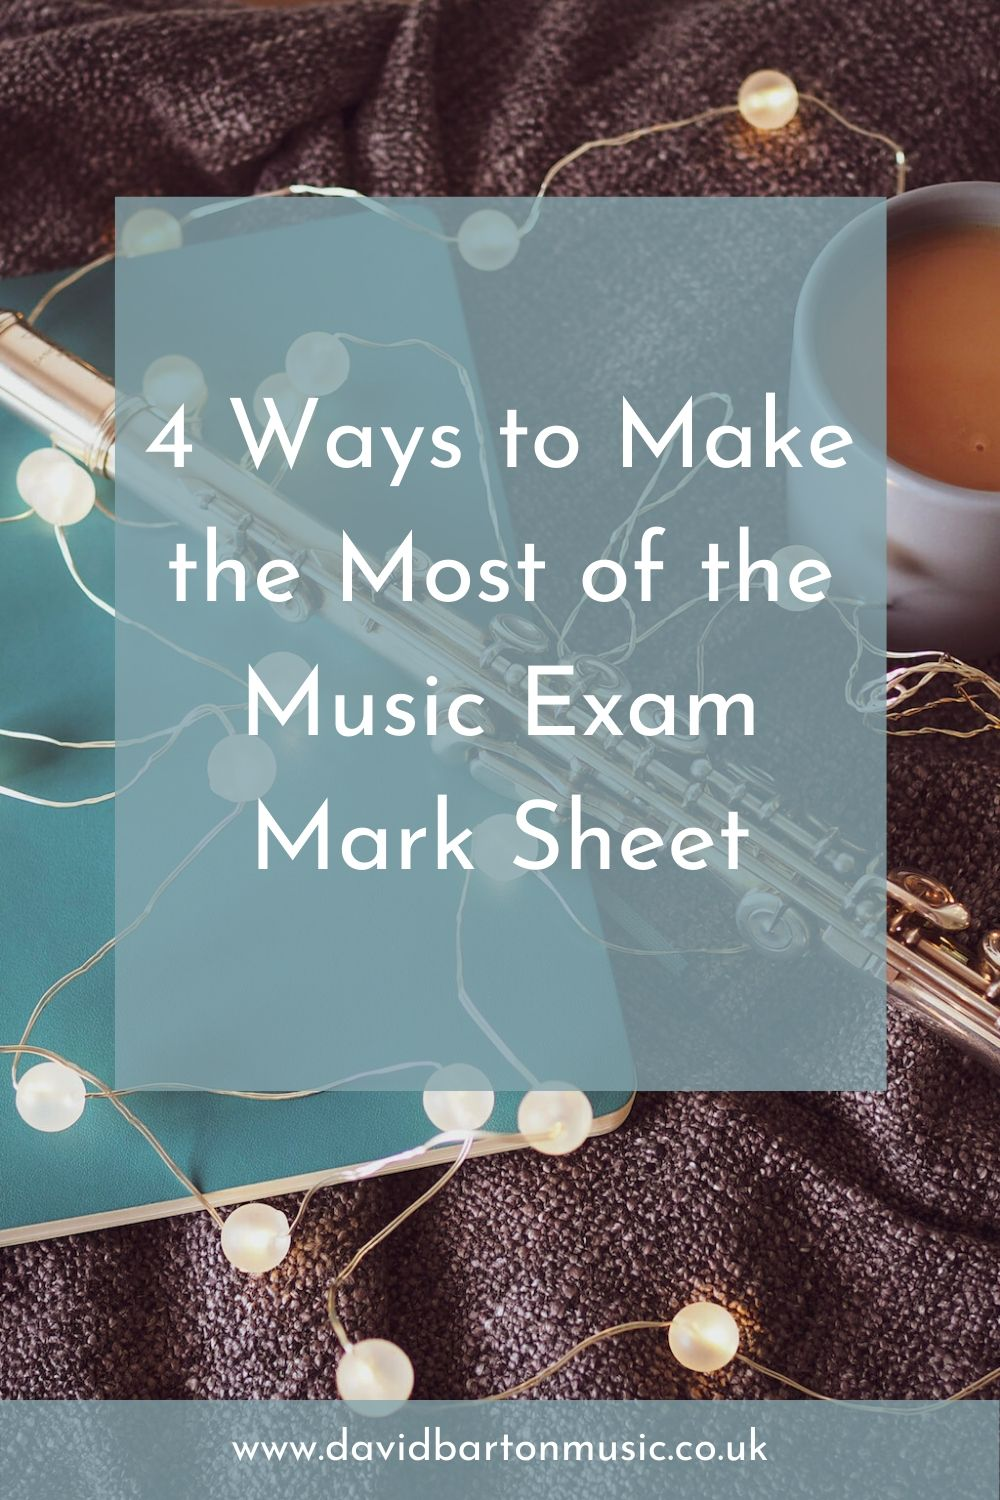 4 Ways to Make the Most of the Music Exam Mark Sheet - Pinterest graphic